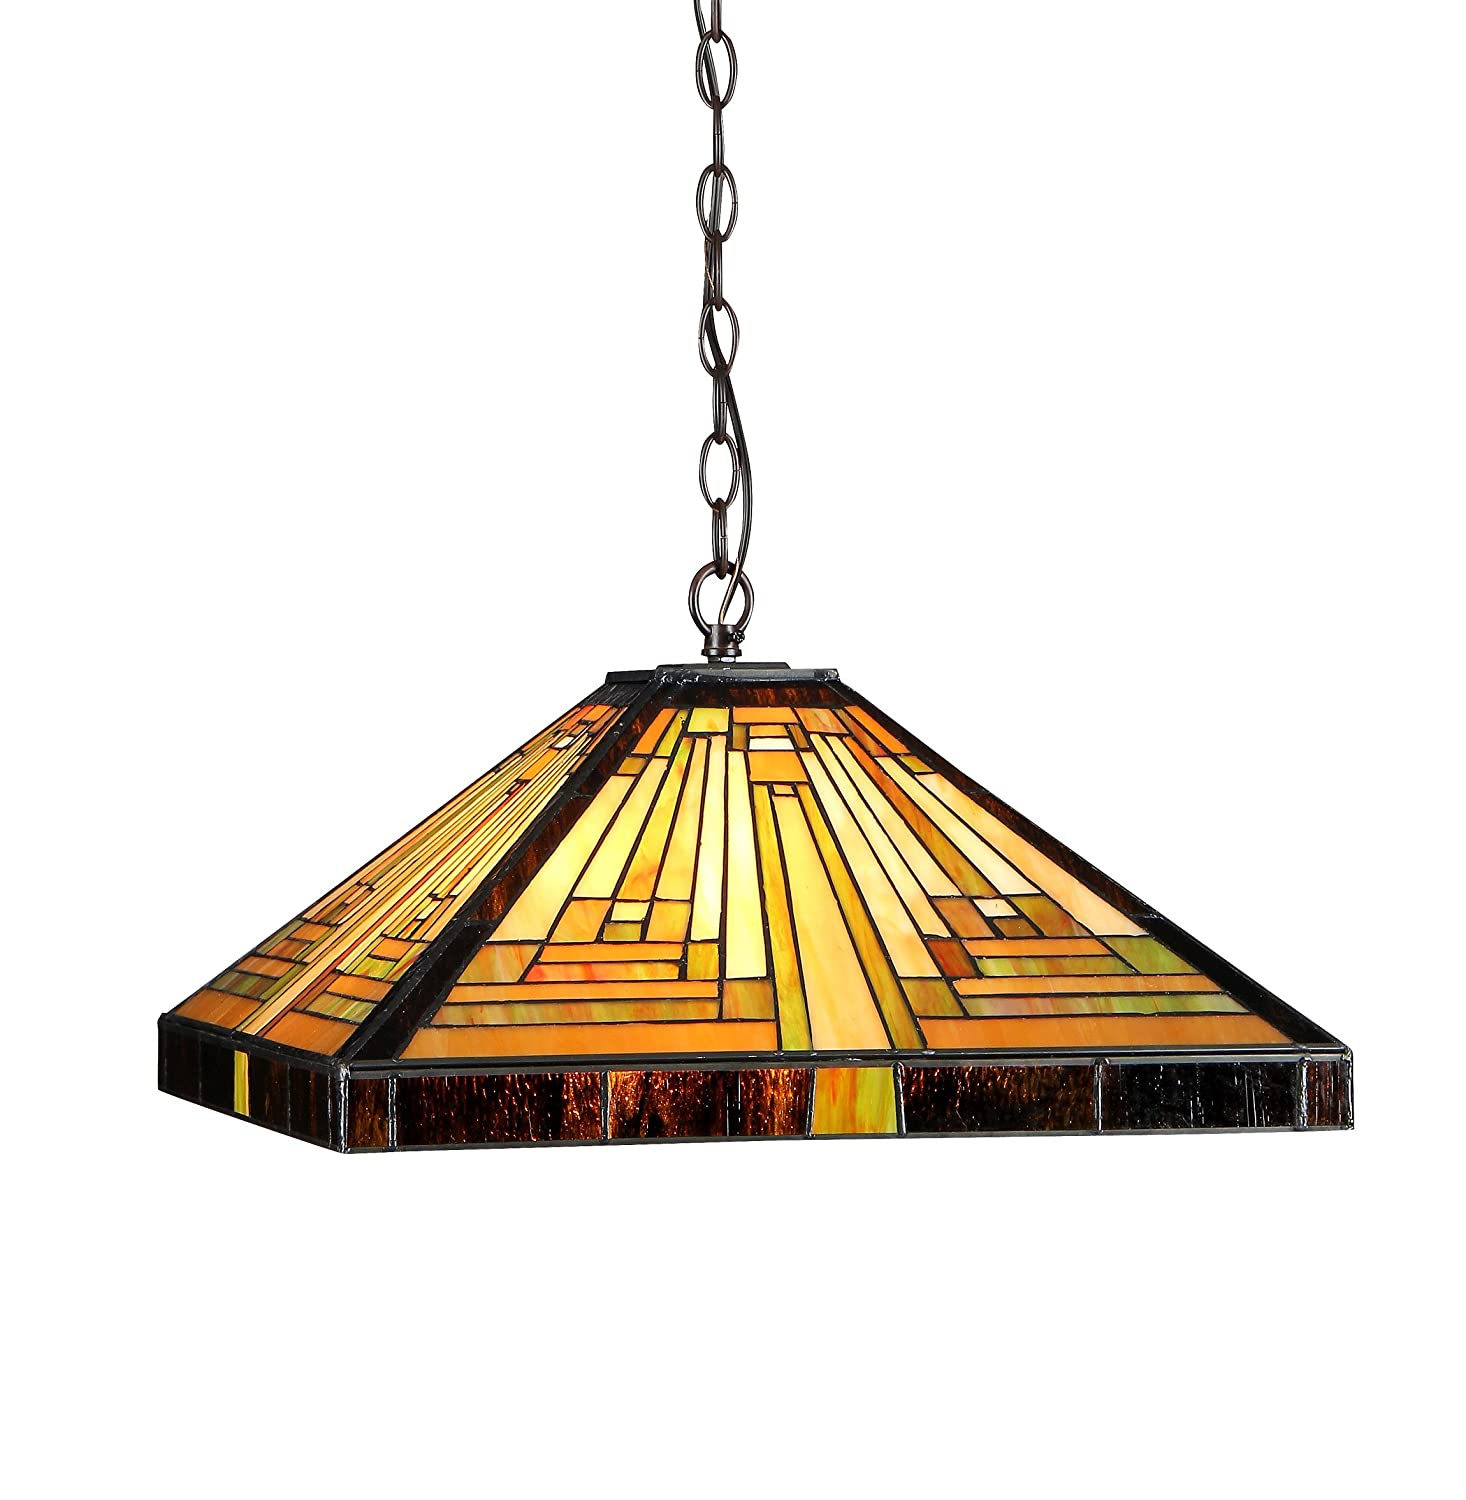 "Chloe Lighting CH33359MR16-DH2 Innes Tiffany-Style Mission 2-Light Ceiling Pendant Fixture with Shade, 7.48 x 16.1 x 16.1"", Bronze"